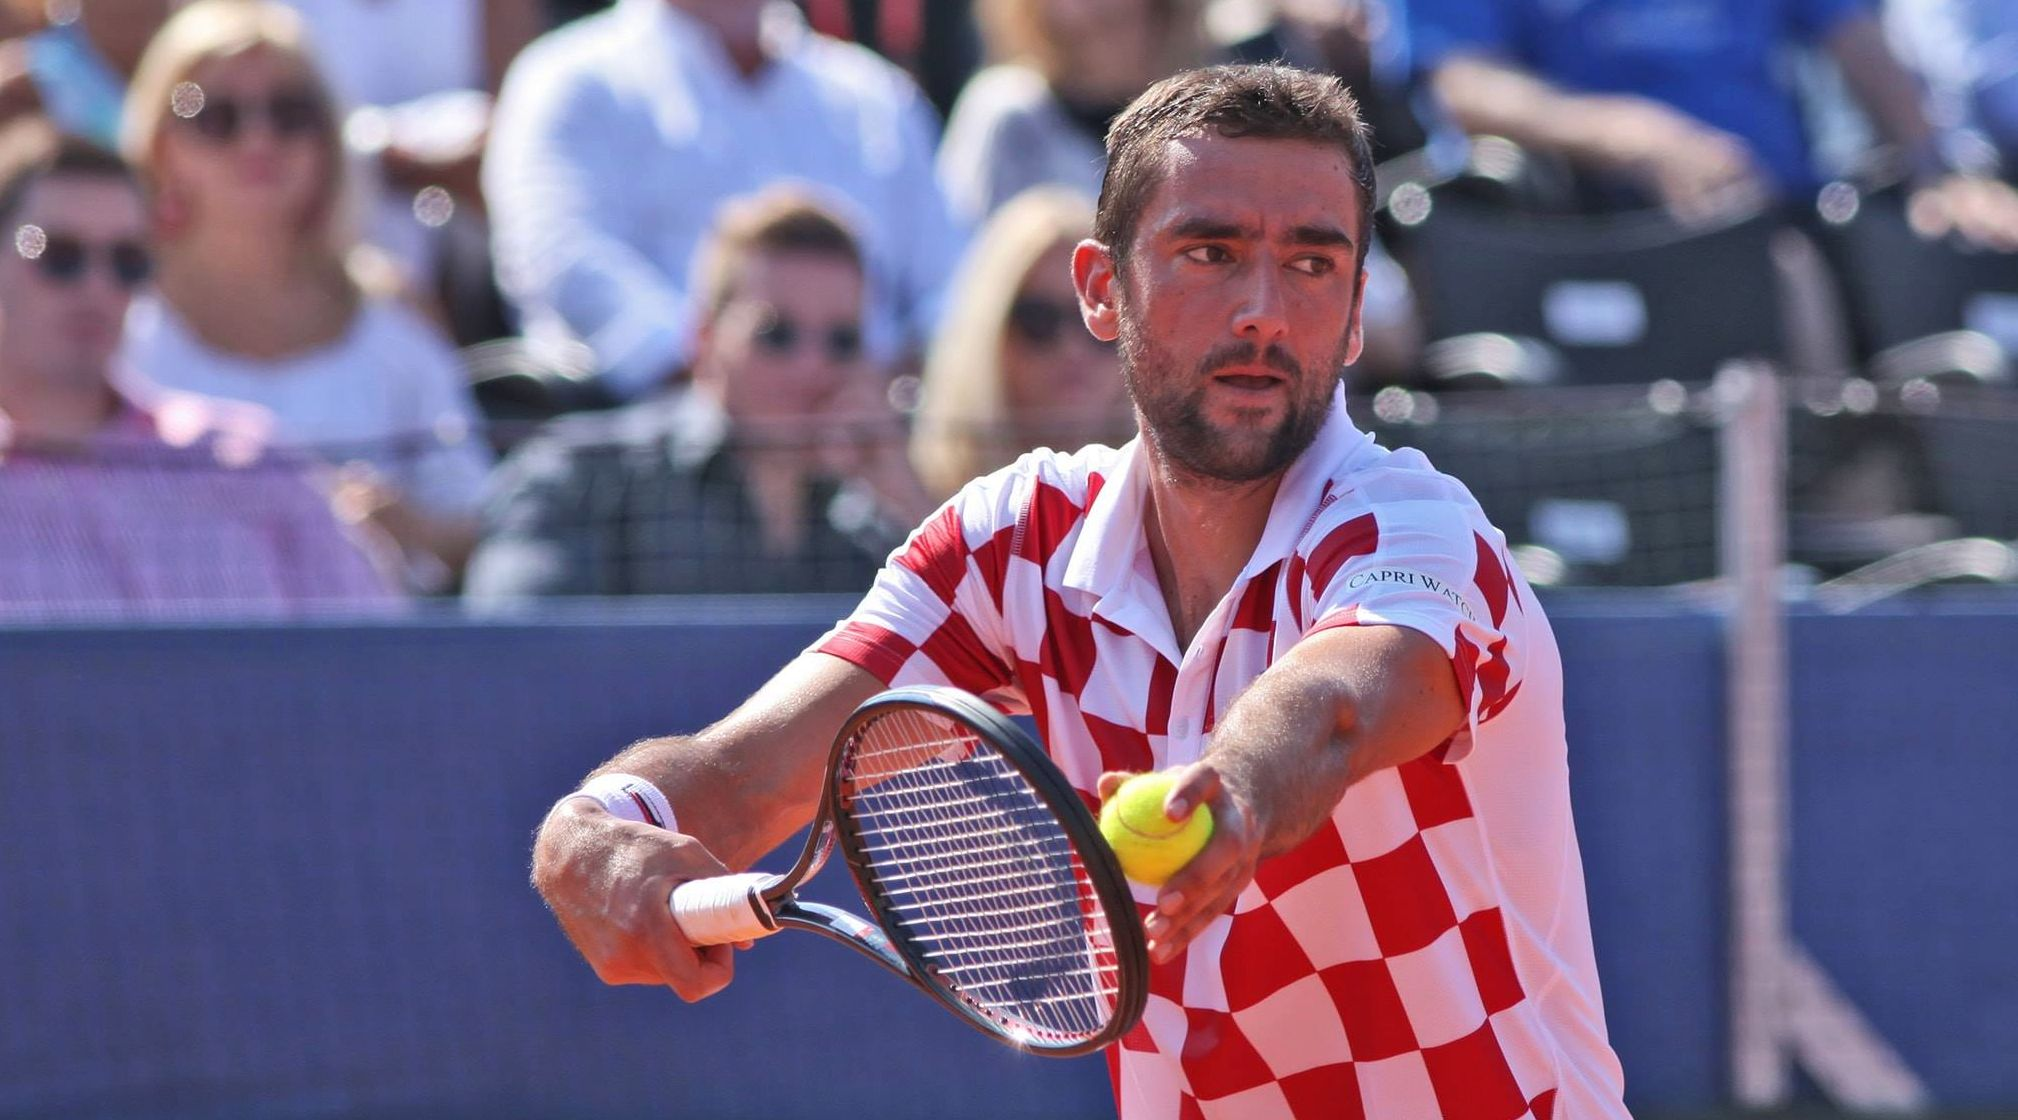 2018 Nitto Atp Finals Marin Cilic Finds Out Group Opponents Borna